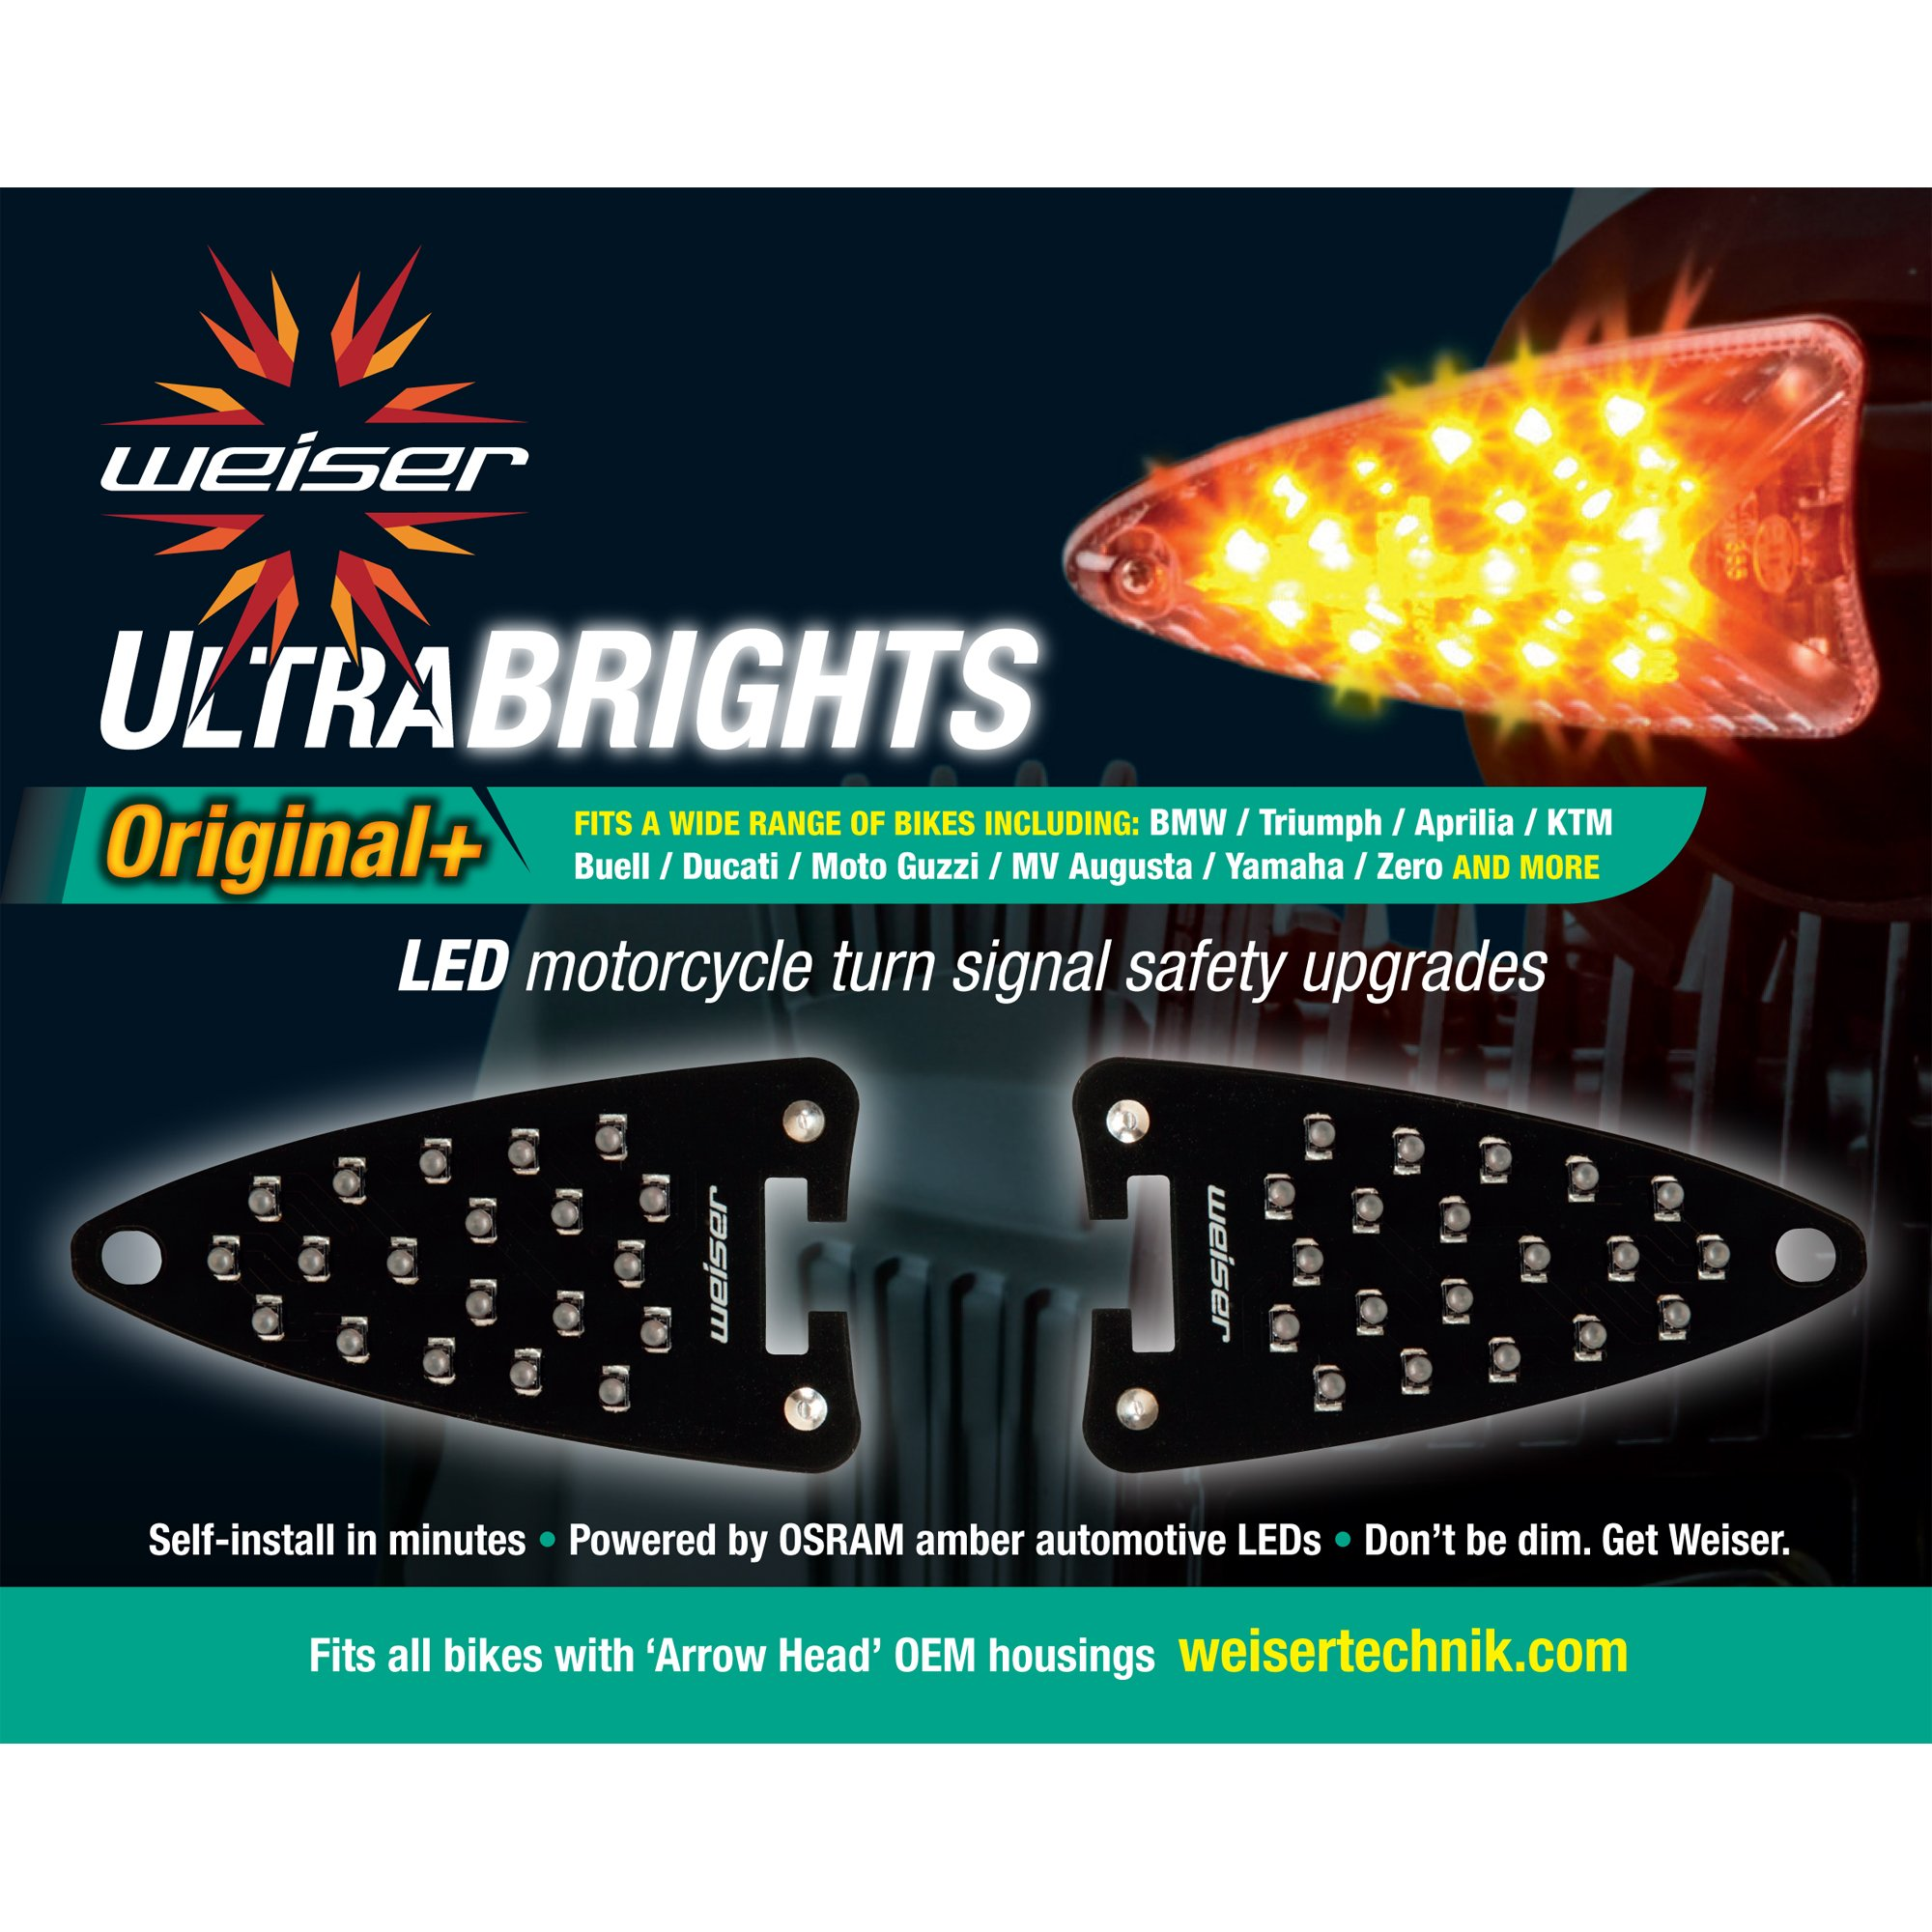 Ultrabrights Original+ LED Turn Signal Upgrades for Aprilia, Triumph, KTM, Buell, Ducati, MV Augusta, Moto Guzzi, Triumph, Yamaha and Zero Motorcycles